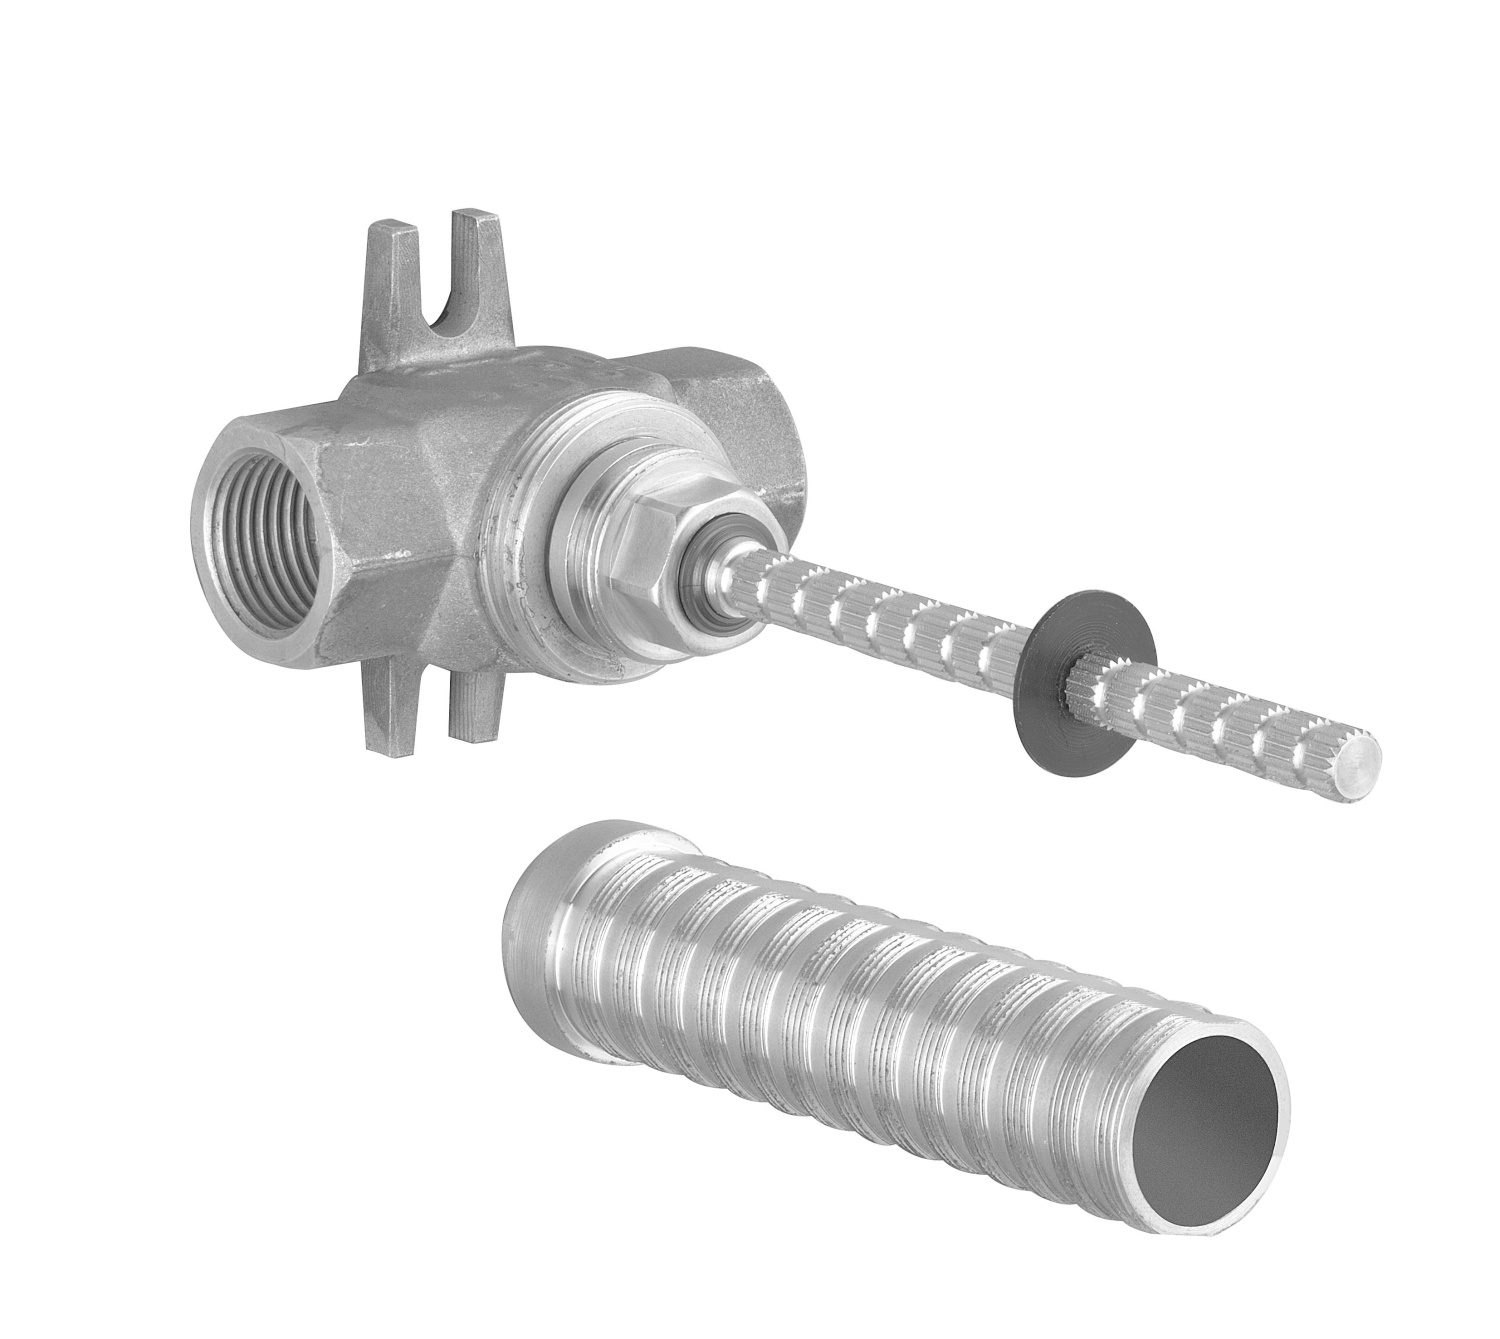 "Wall valve anti-clockwise closing 1/2"" - - 35 671 970 90"